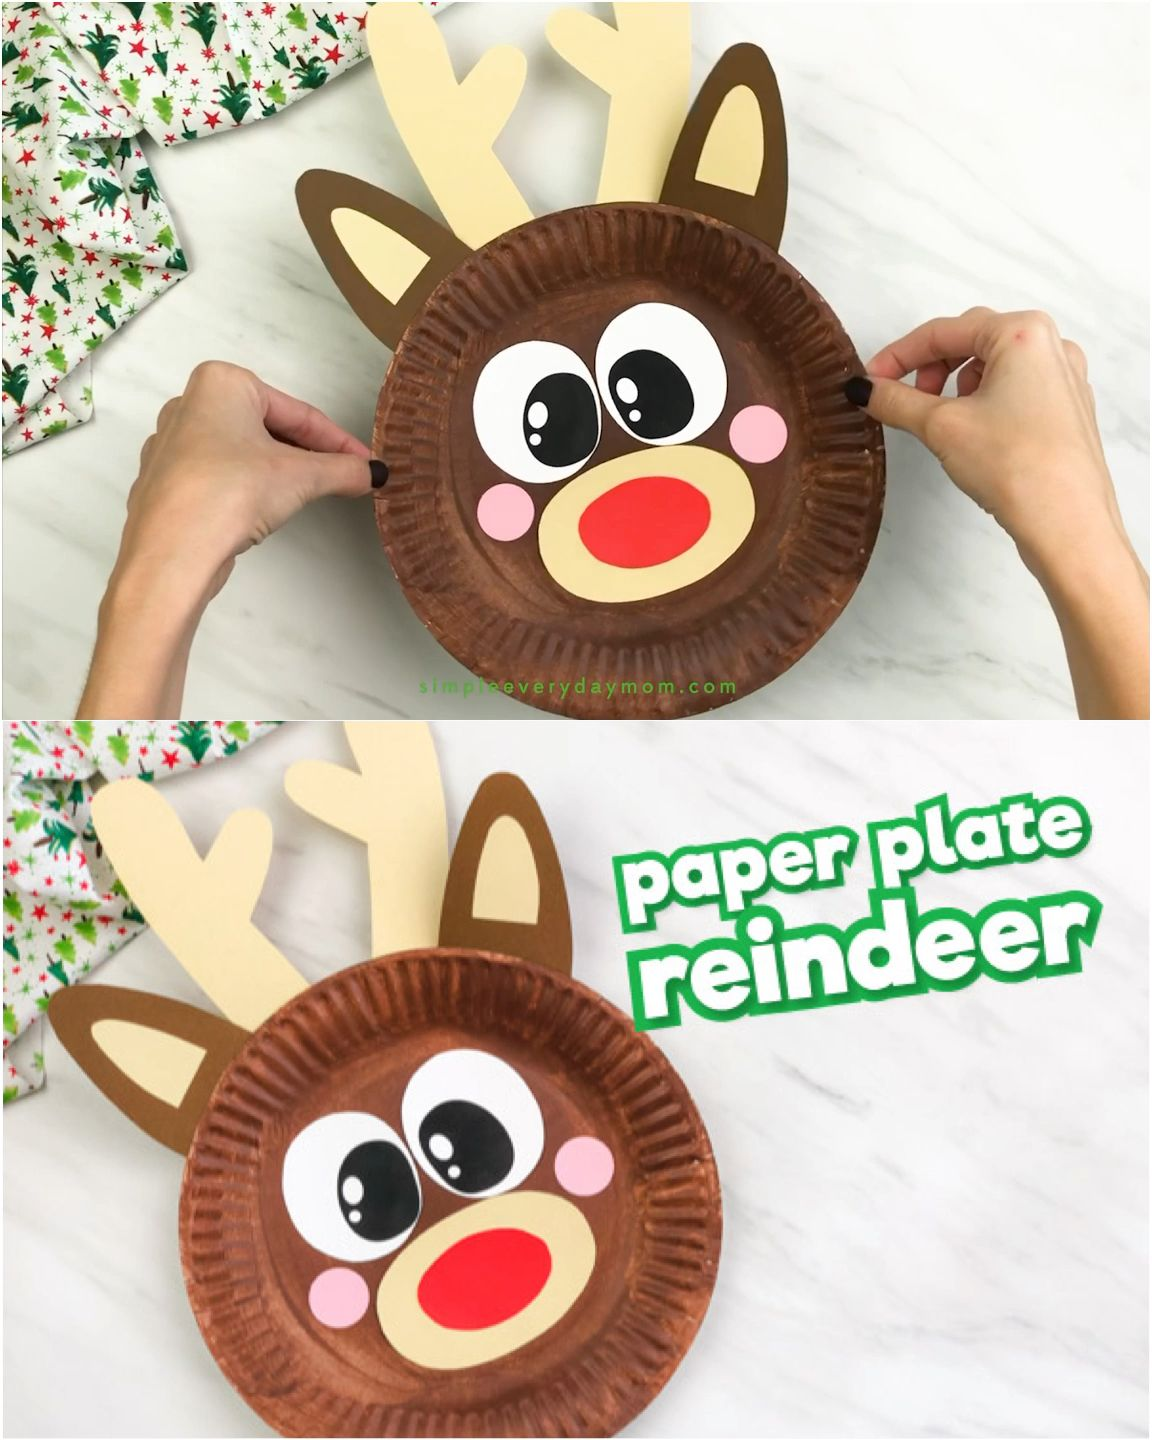 Paper Plate Reindeer Craft For Kids #holidaycraftschristmas